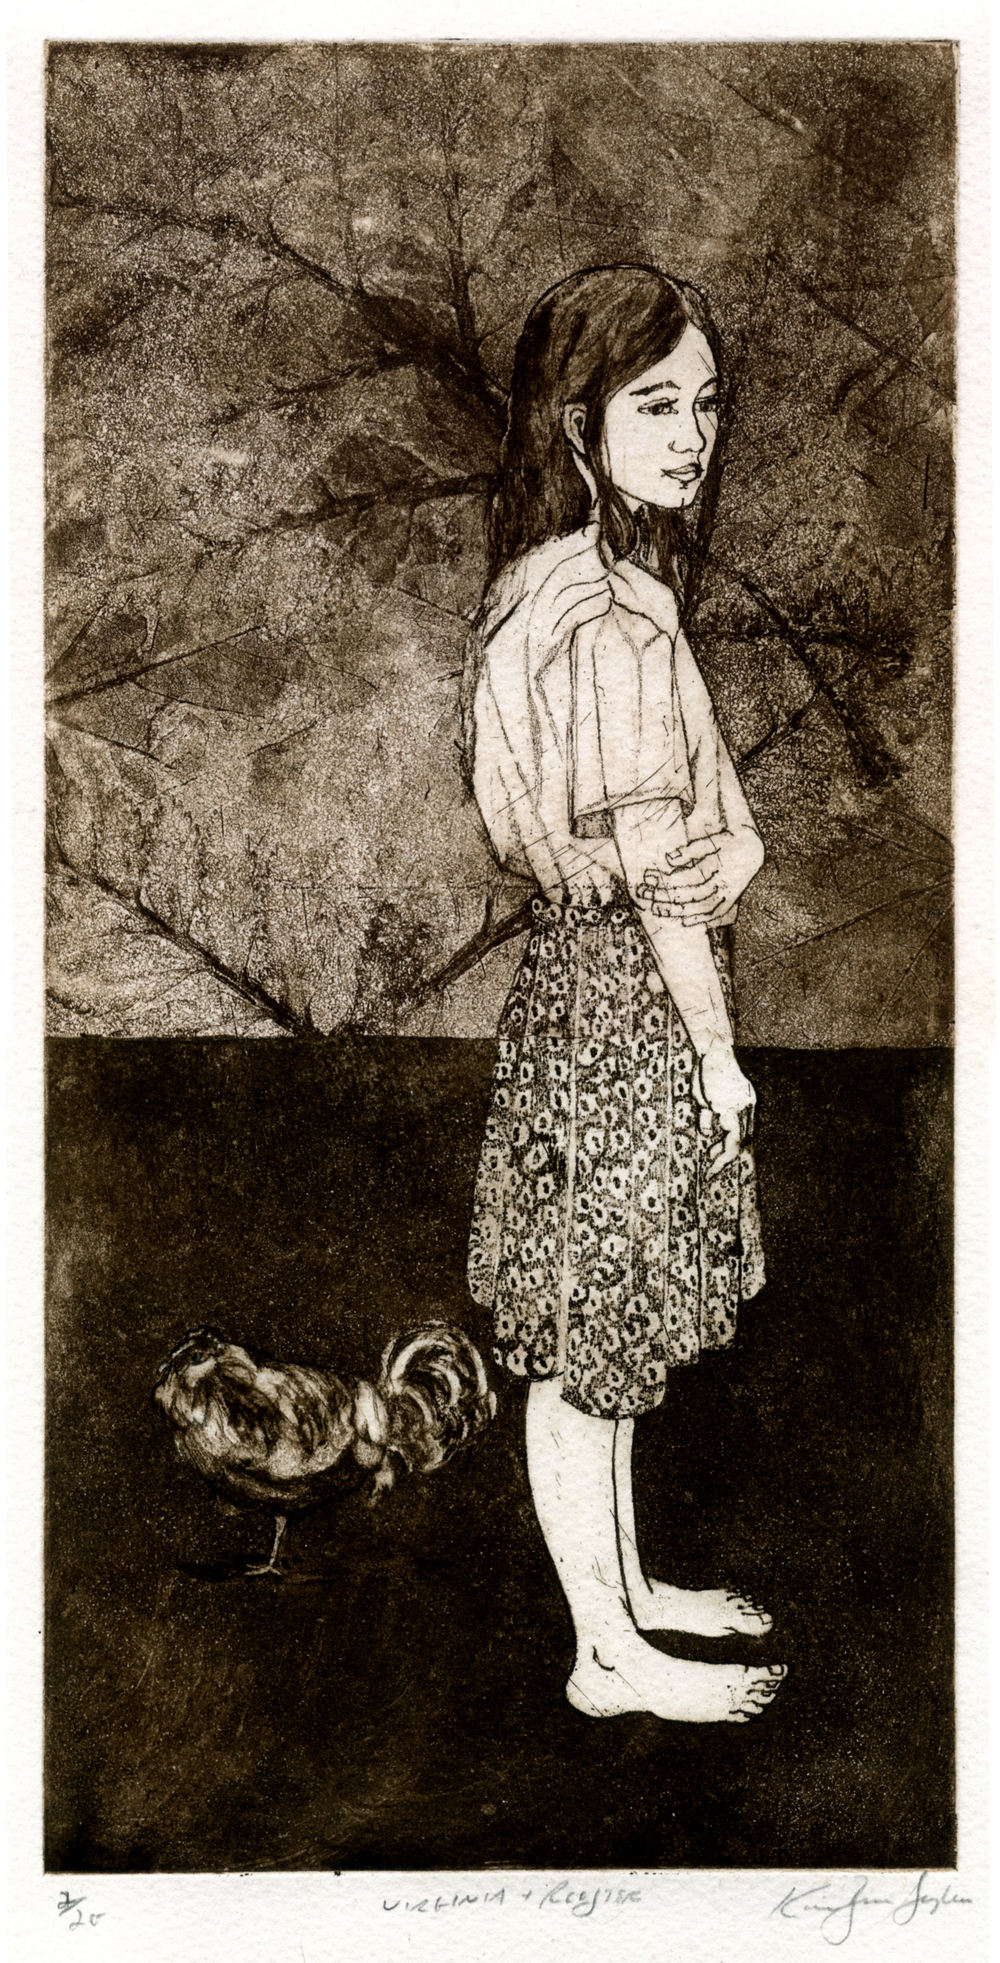 Virginia and rooster, etching